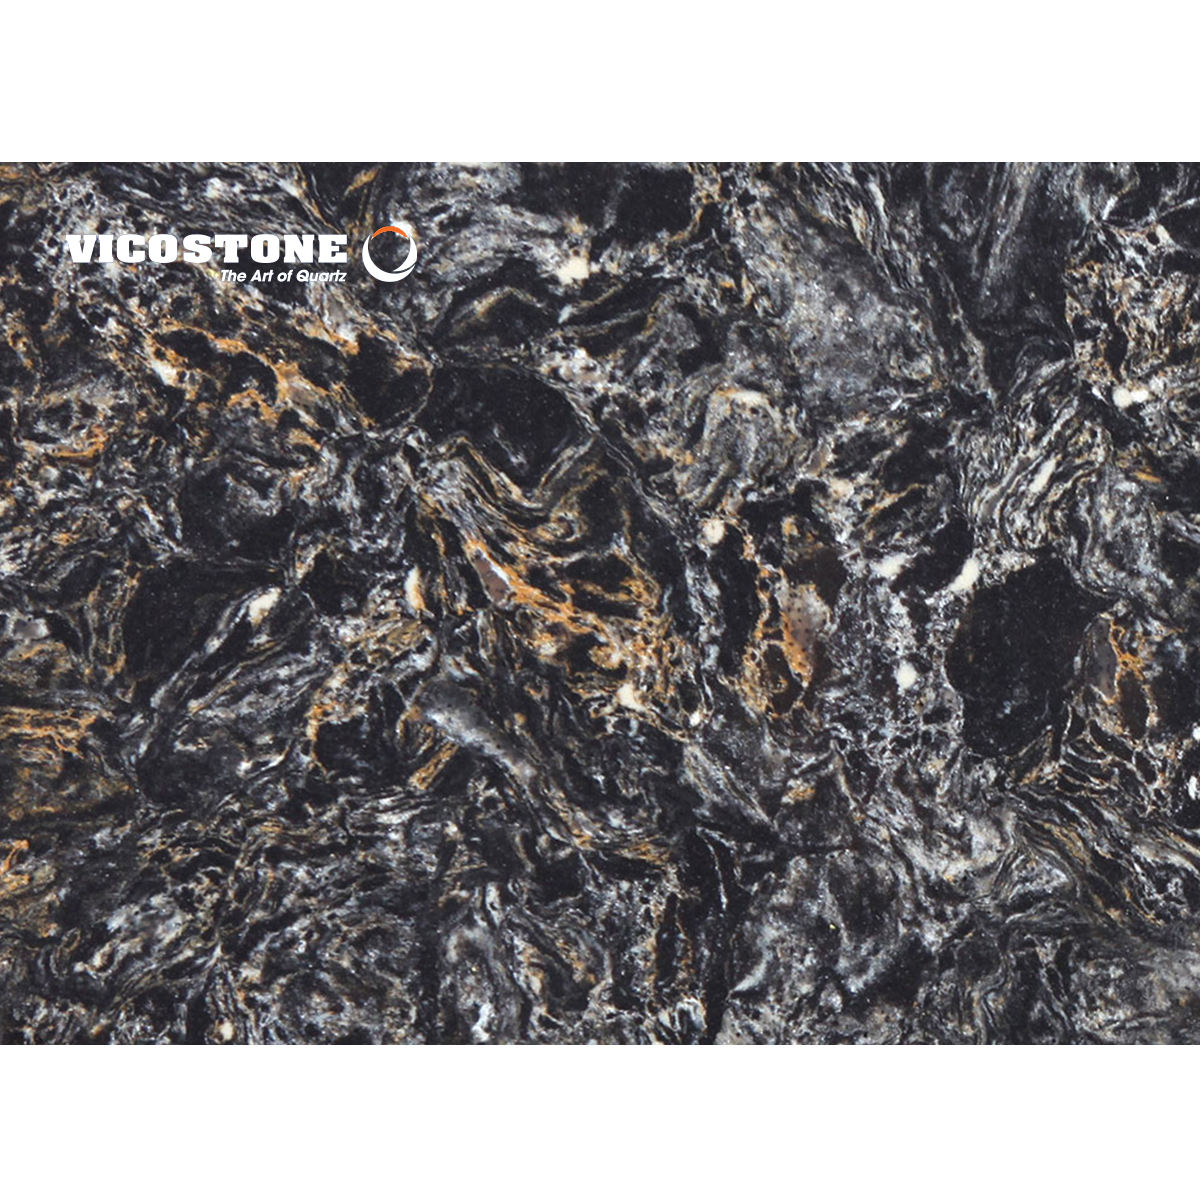 Black With Swirls of White and Saffron Quartz Stone - Vicostone Cosmic Black BQ9427